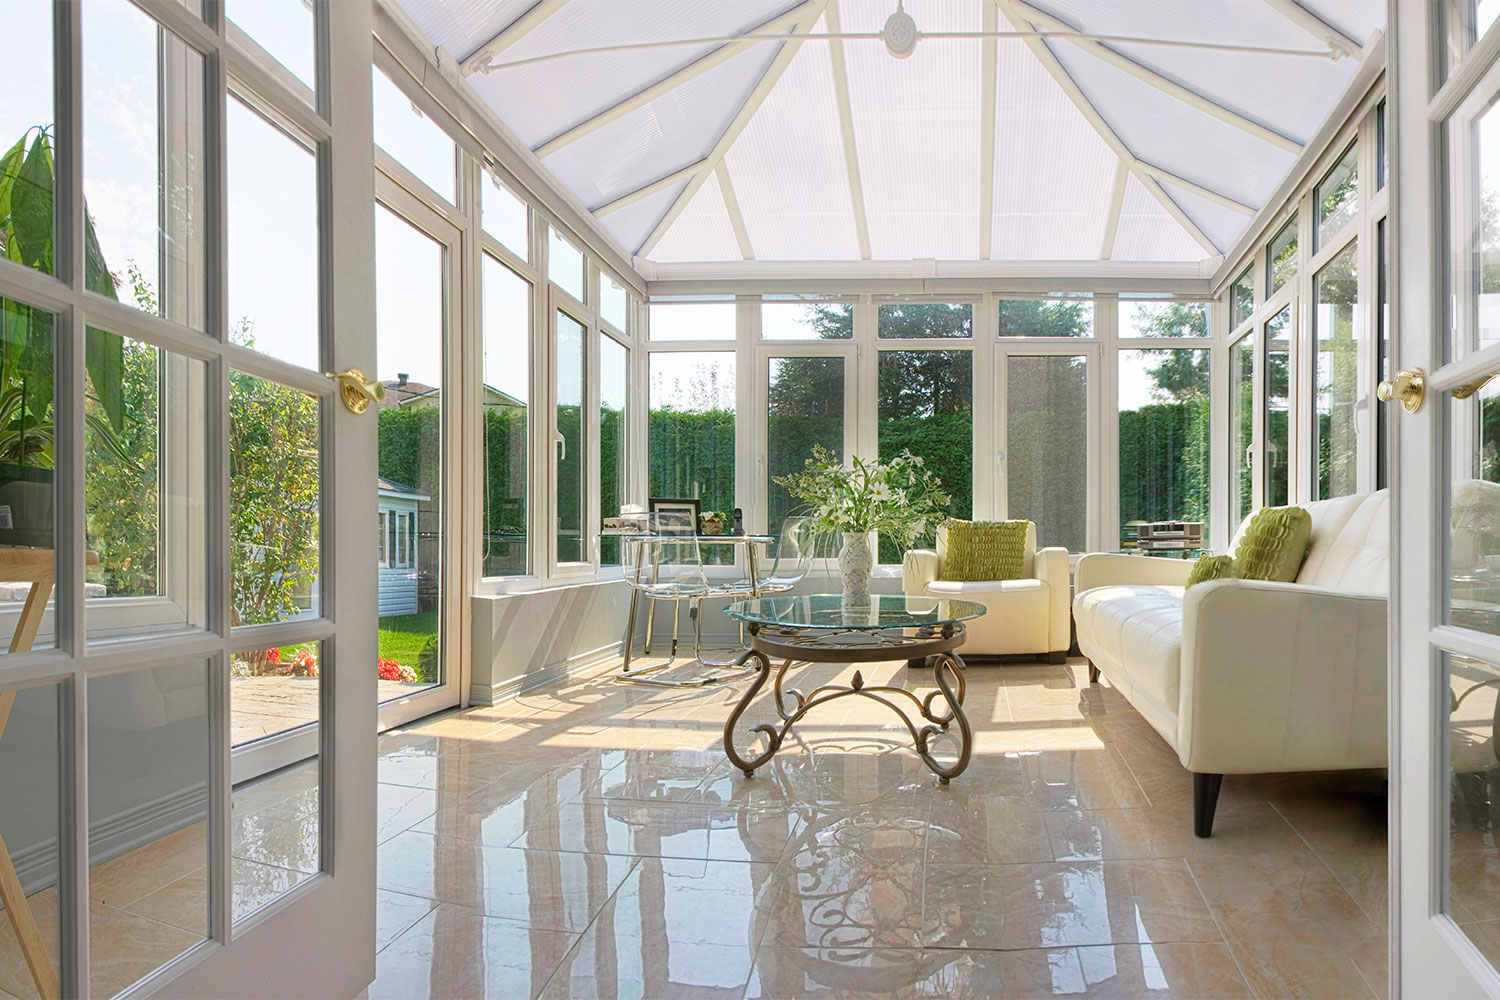 Iowa Conservatory Sunroom Installation | Interior View | Home Town restyling